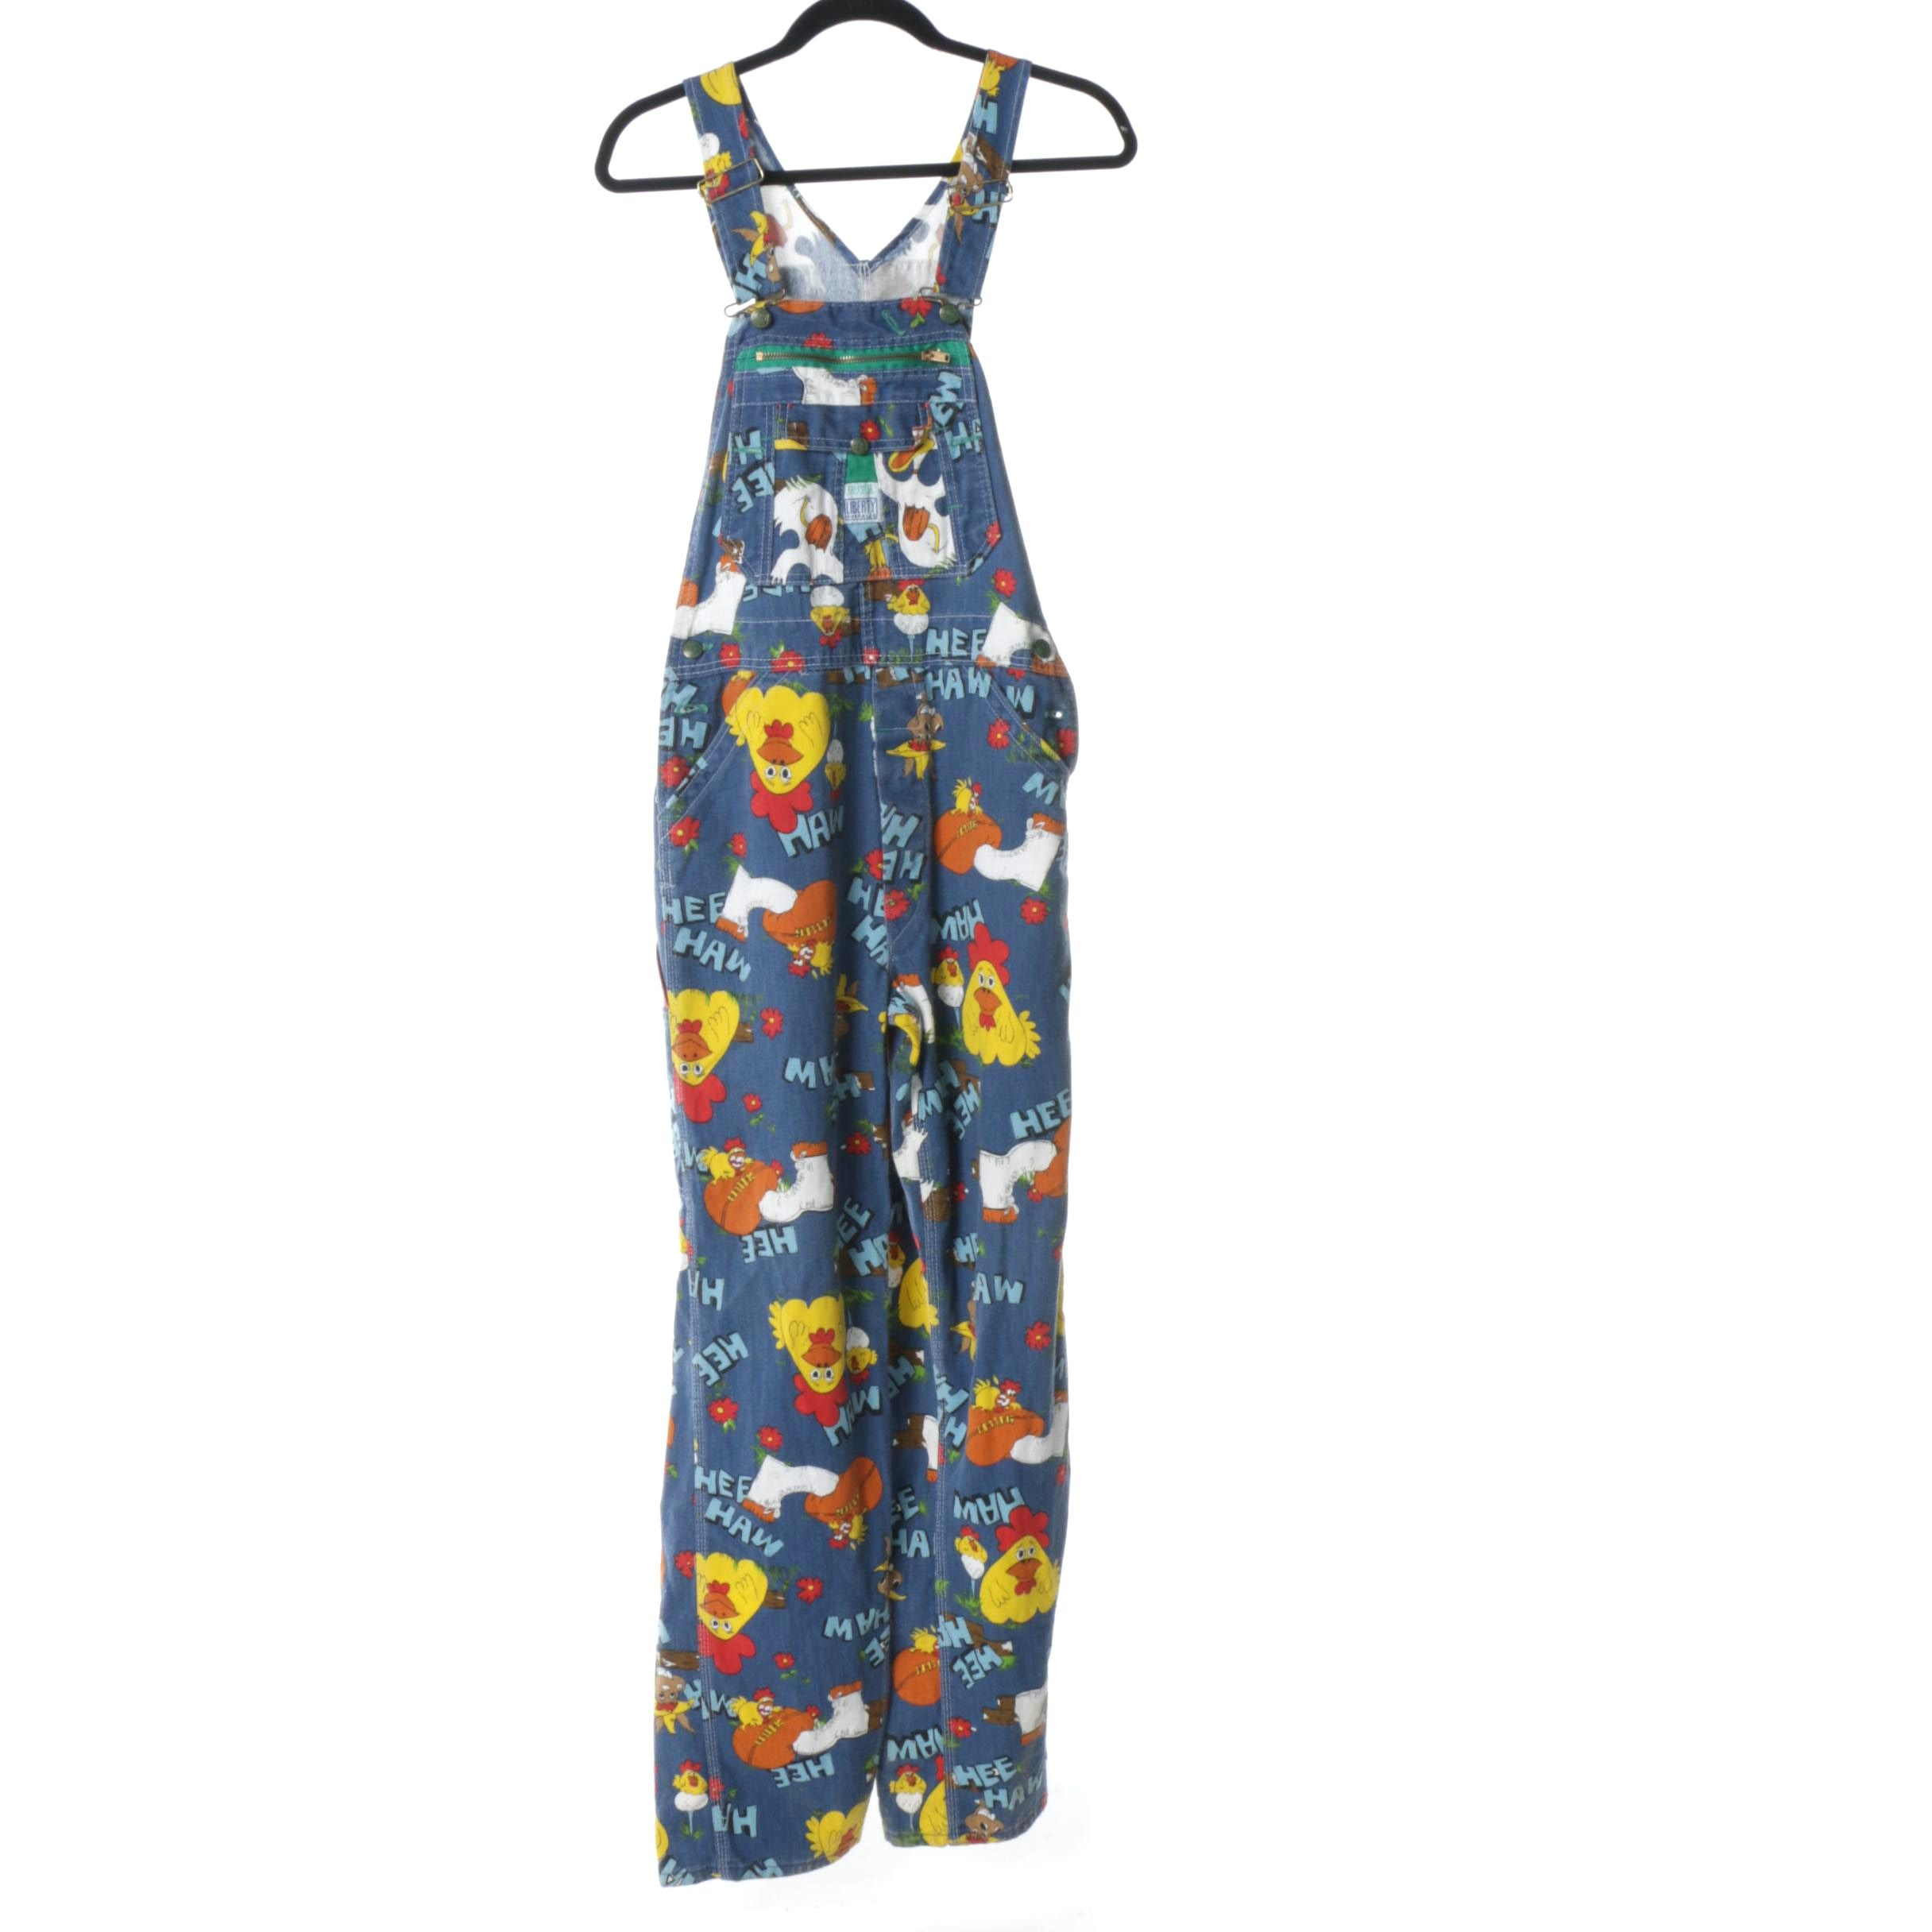 Adult Vintage Hee Haw by Liberty Overalls